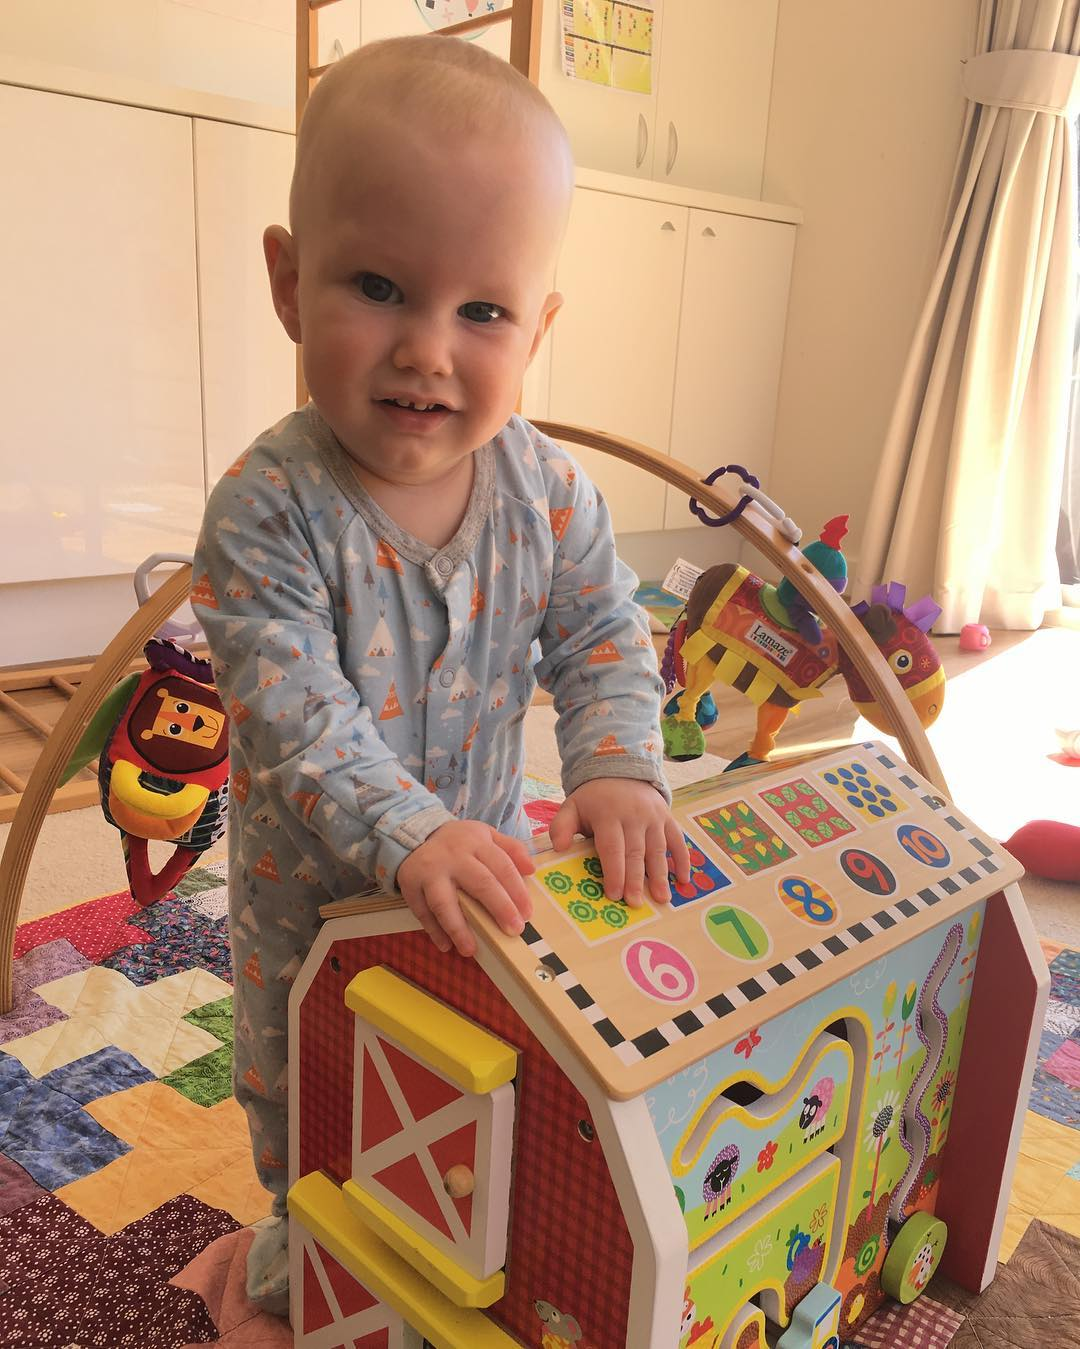 #MatthewAlexander is pulling himself up to stand. This wooden farmhouse is nice and sturdy for him ?? #9months